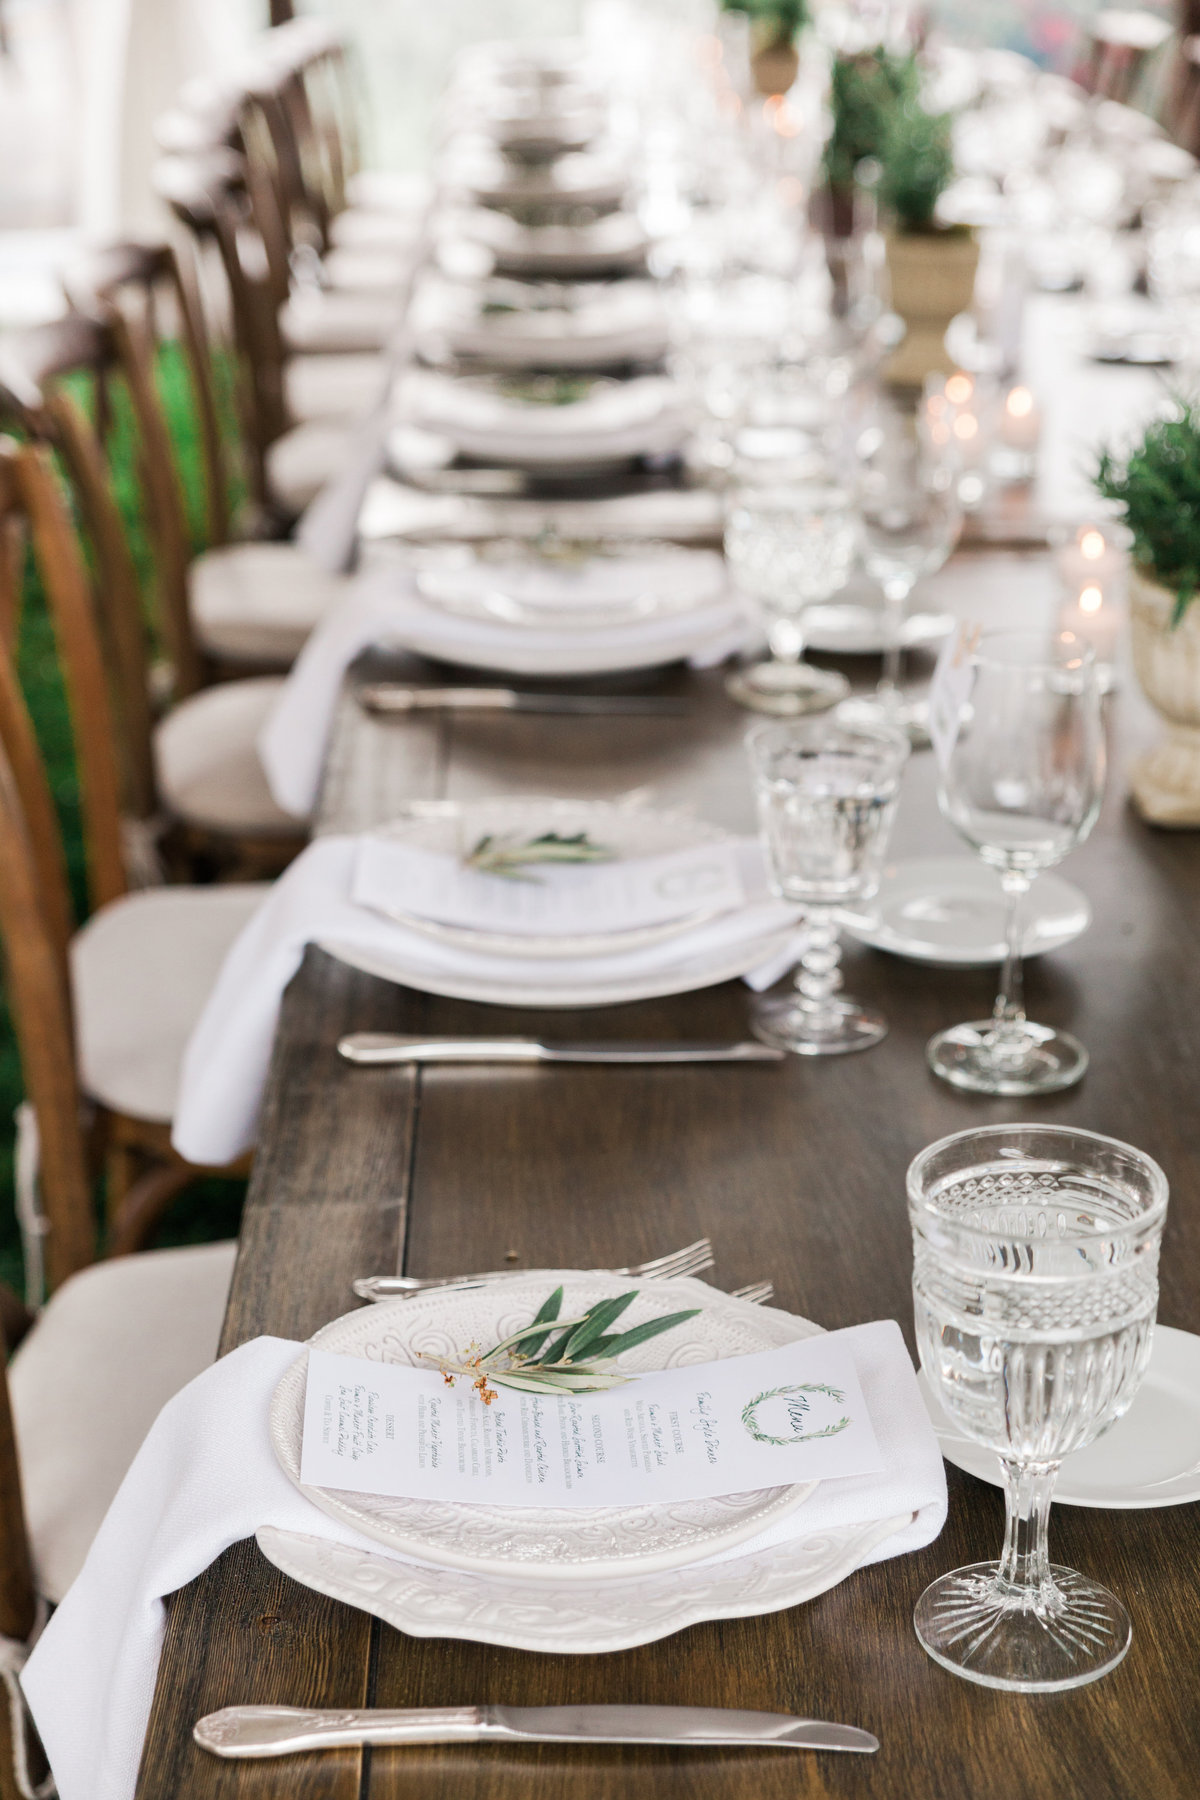 Palihouse_Cielo_Farms_Malibu_Rustic_Wedding_Valorie_Darling_Photography - 84 of 107